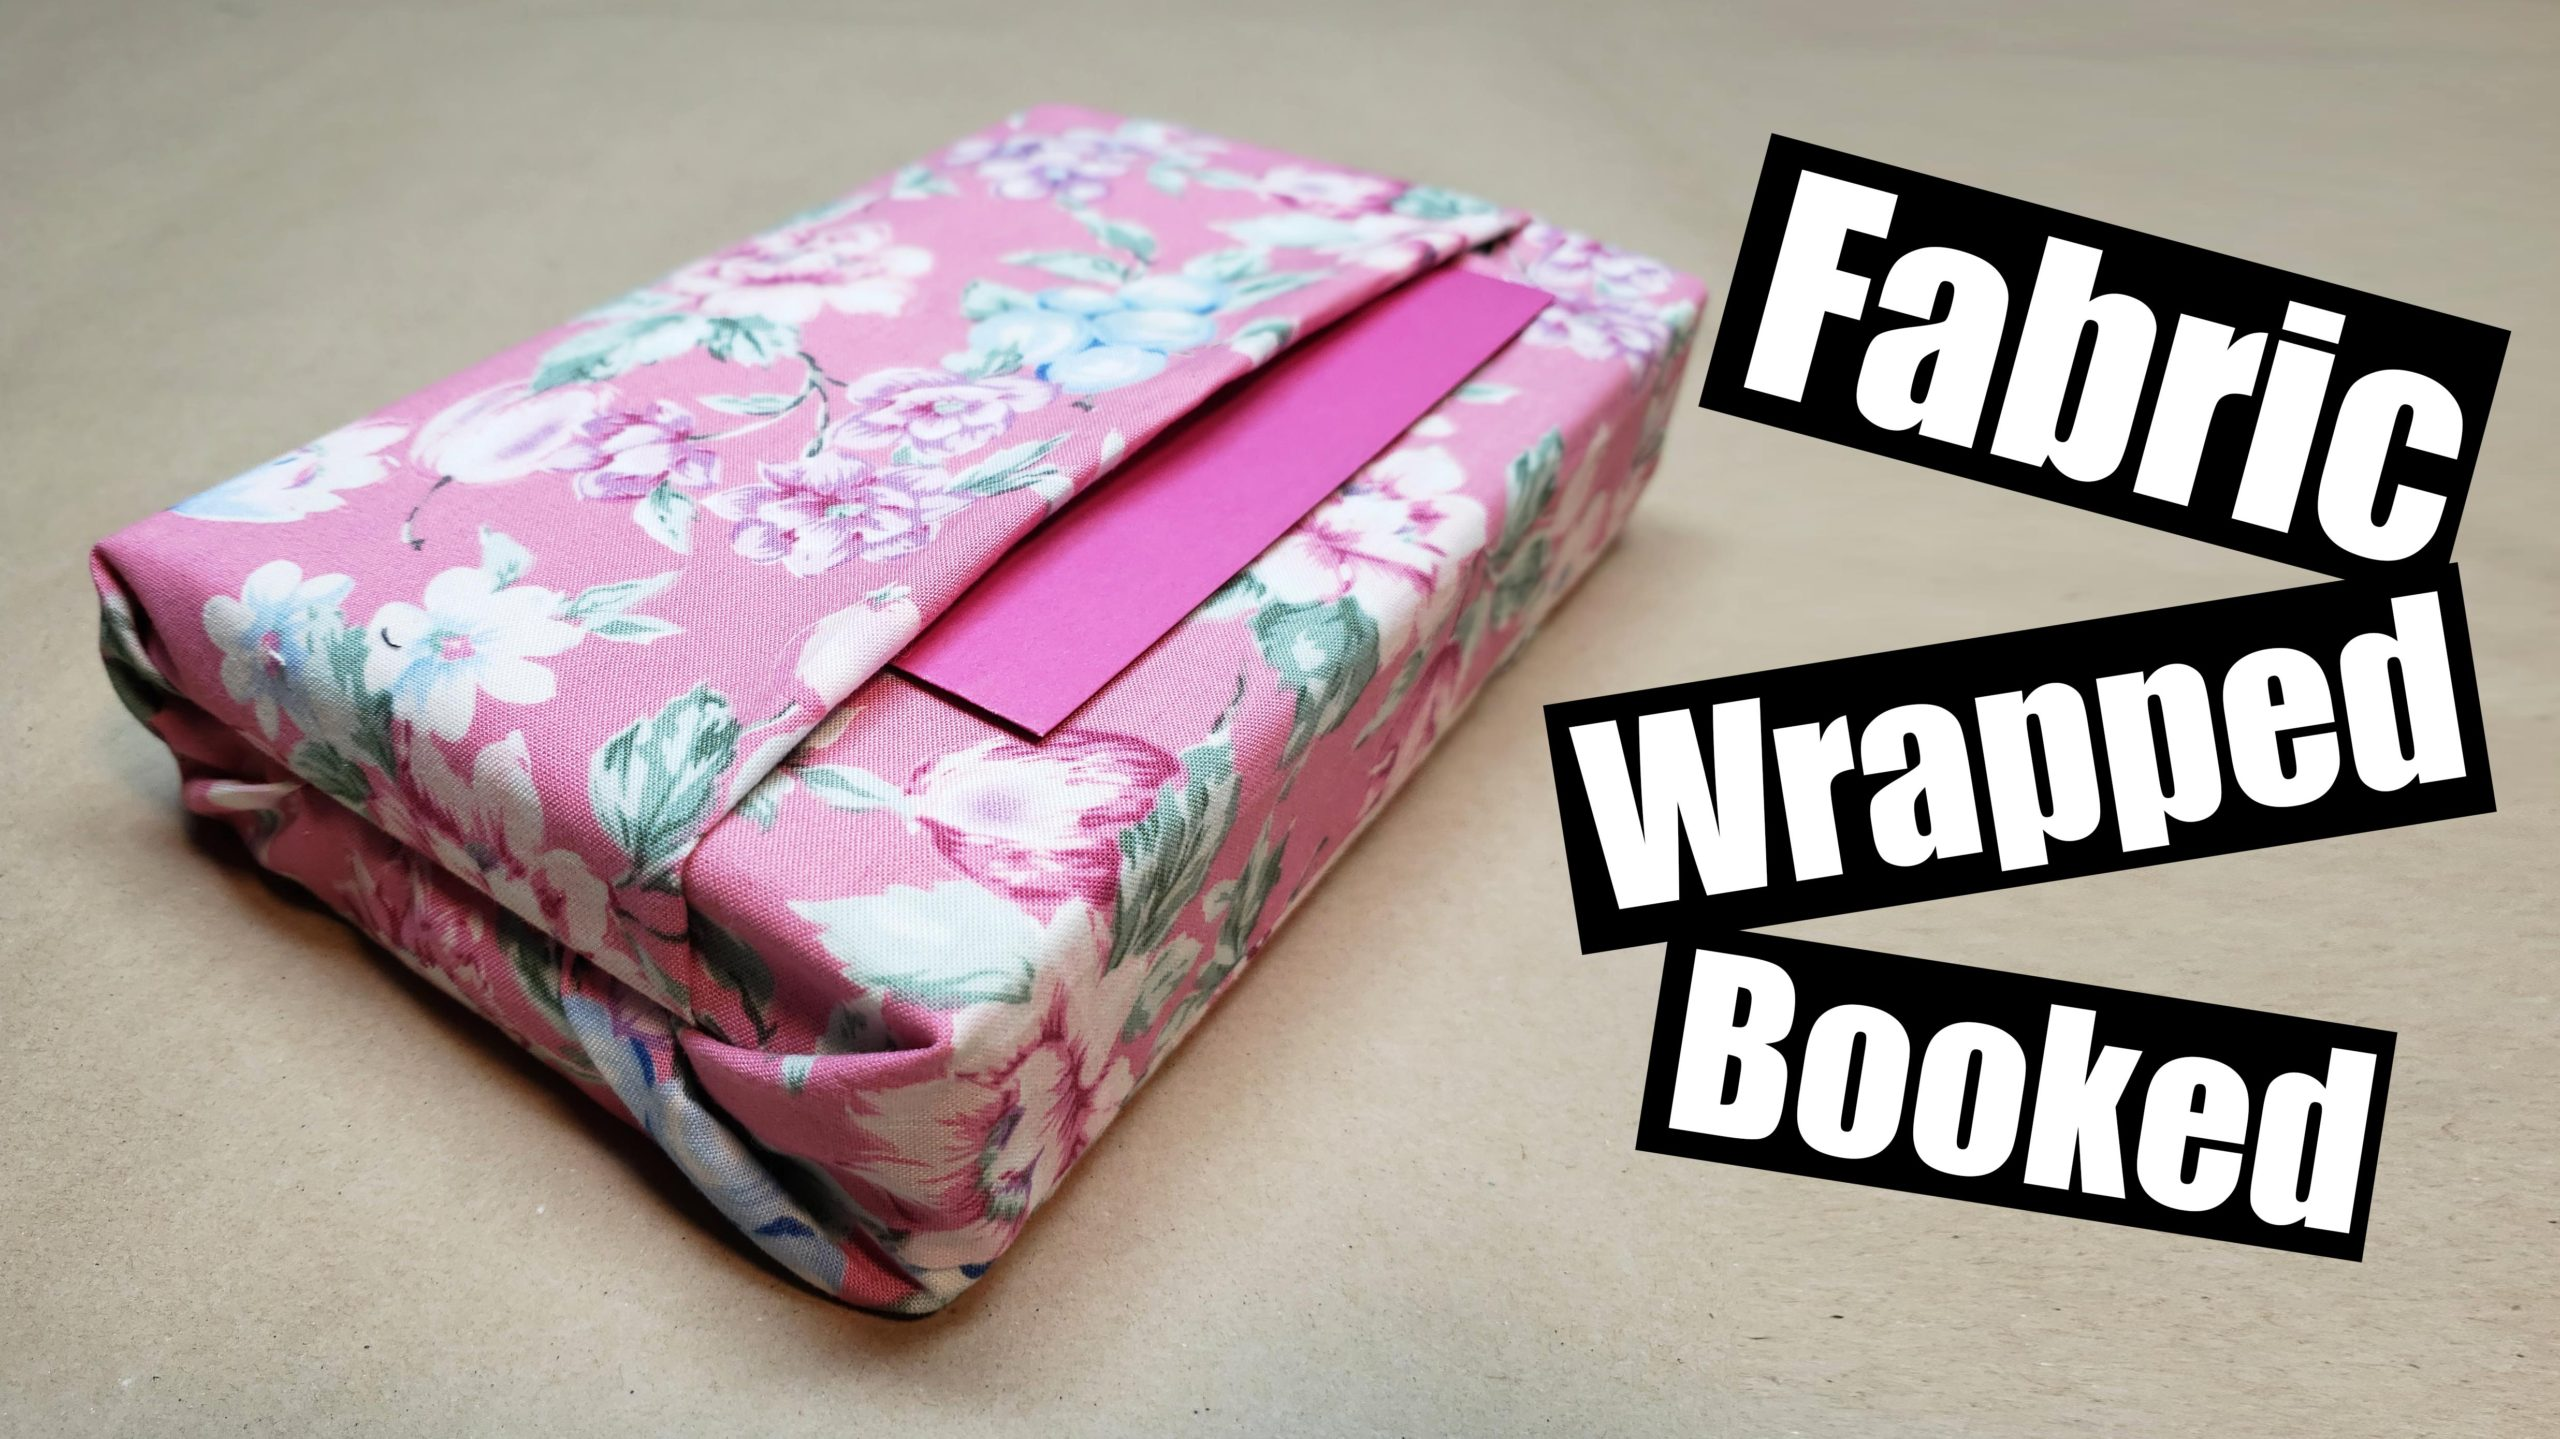 Wrapping Books with Fabric